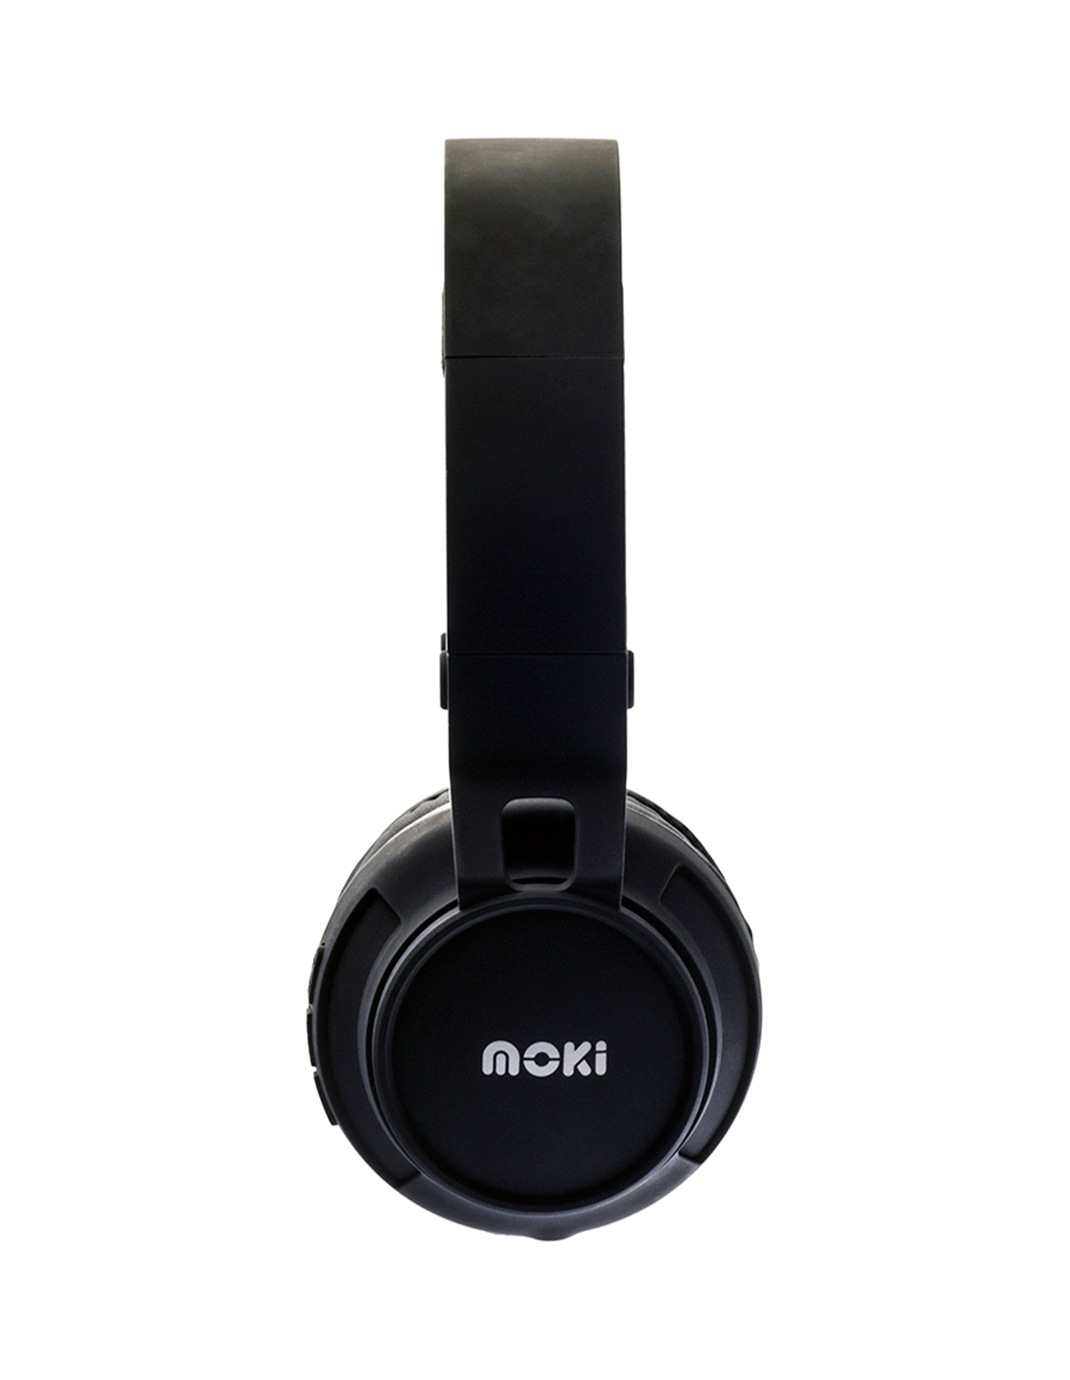 moki exo bluetooth headphones instructions